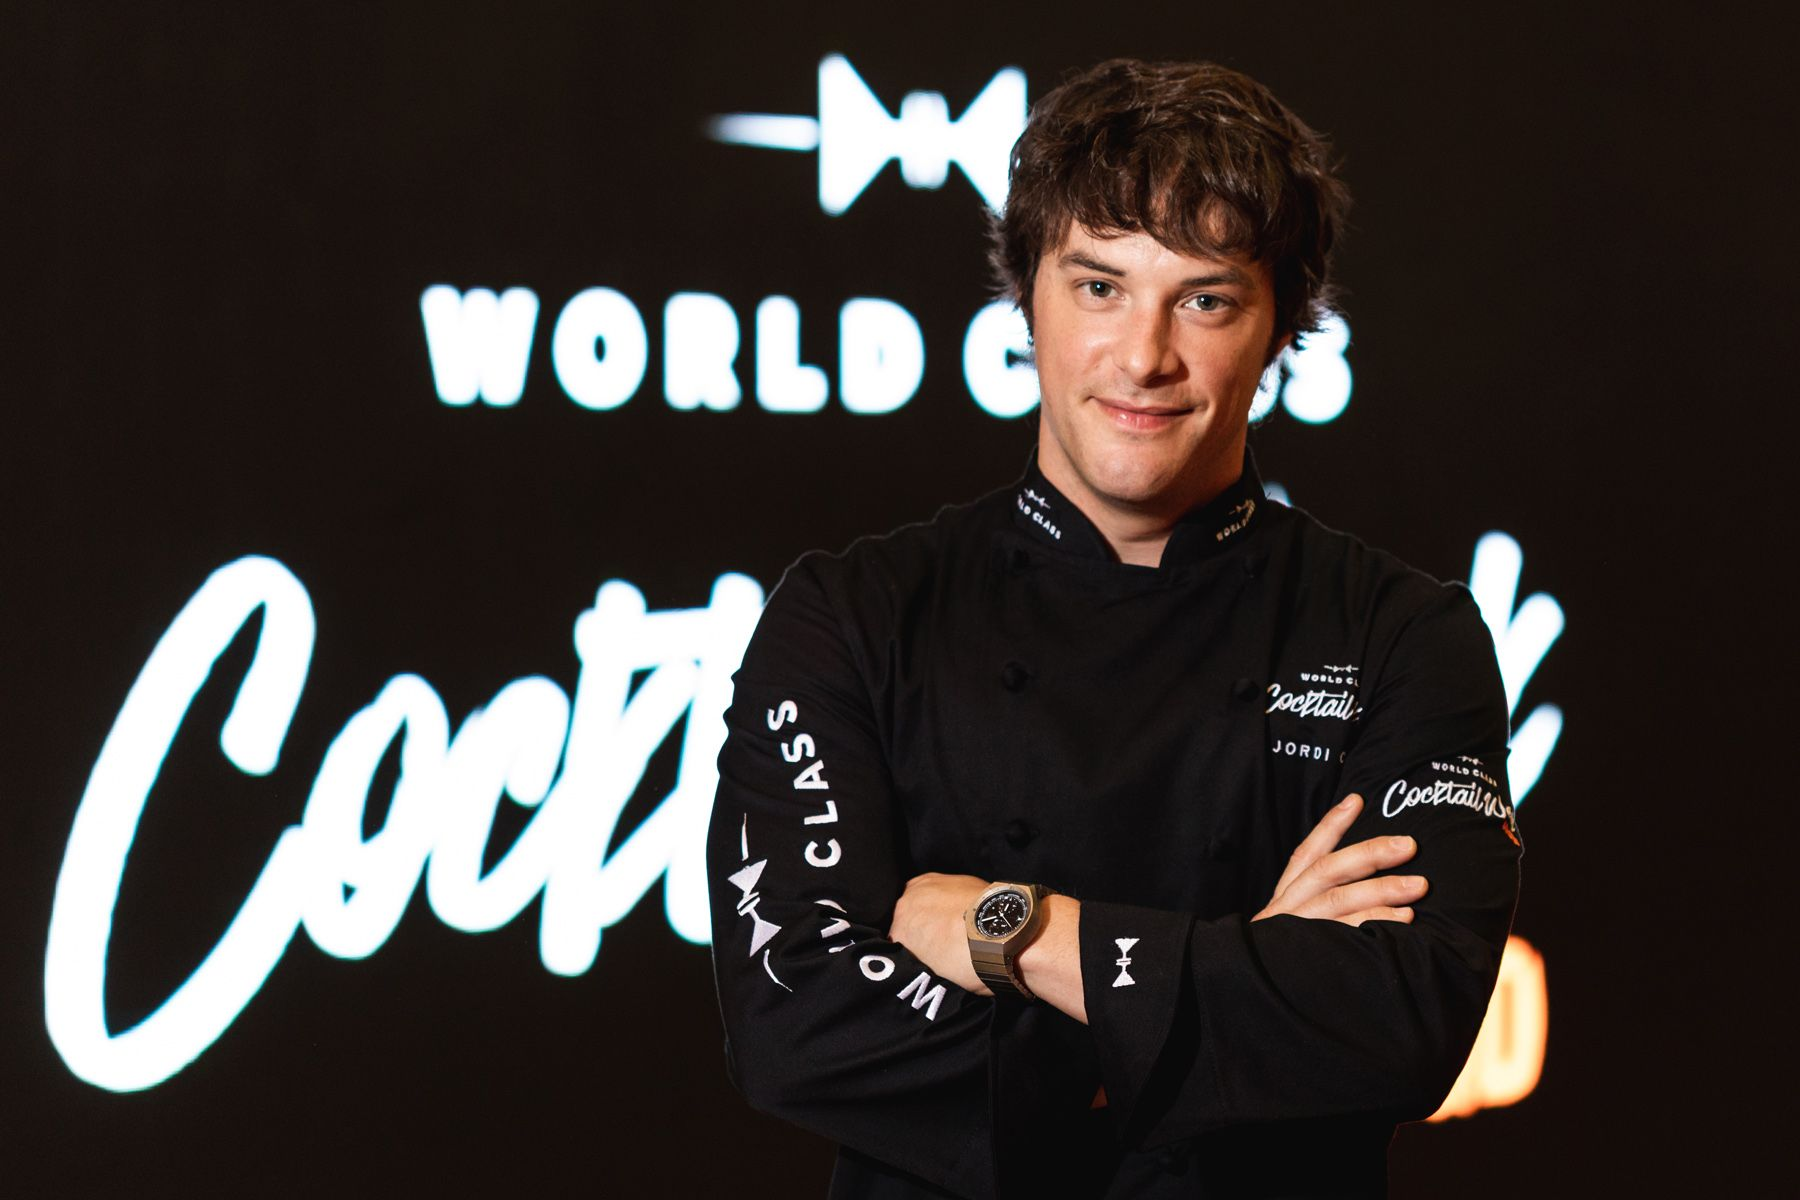 Jordi Cruz, embajador de la primera World Class Cocktail Week Madrid